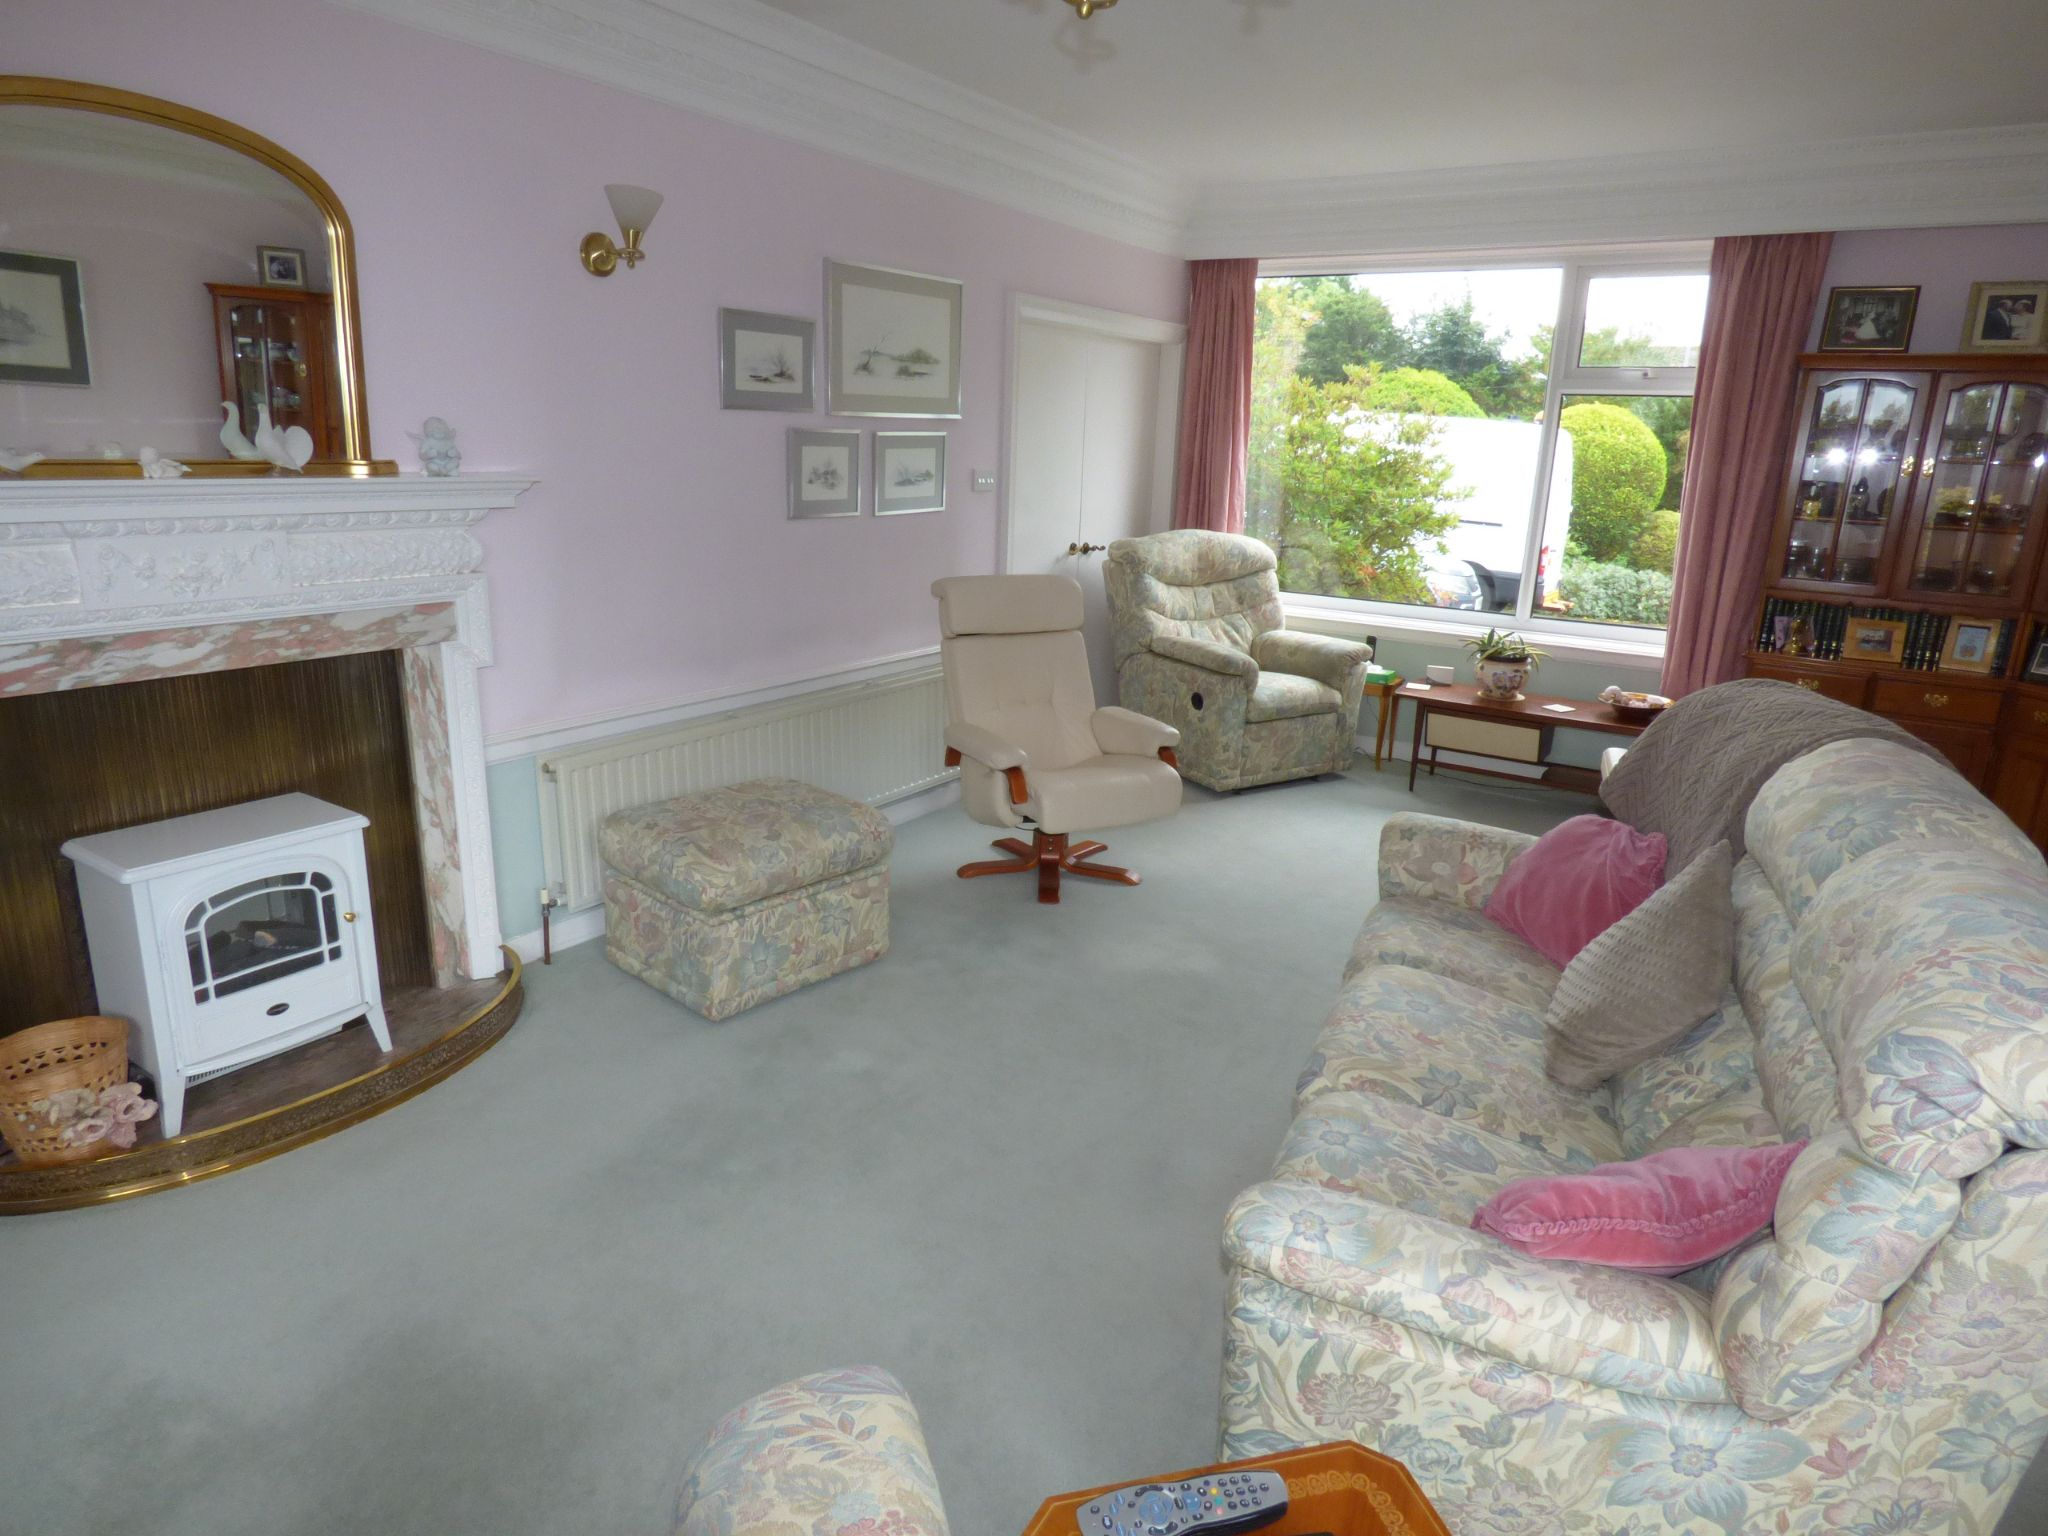 5 Bedroom Detached Bungalow For Sale - Photograph 12